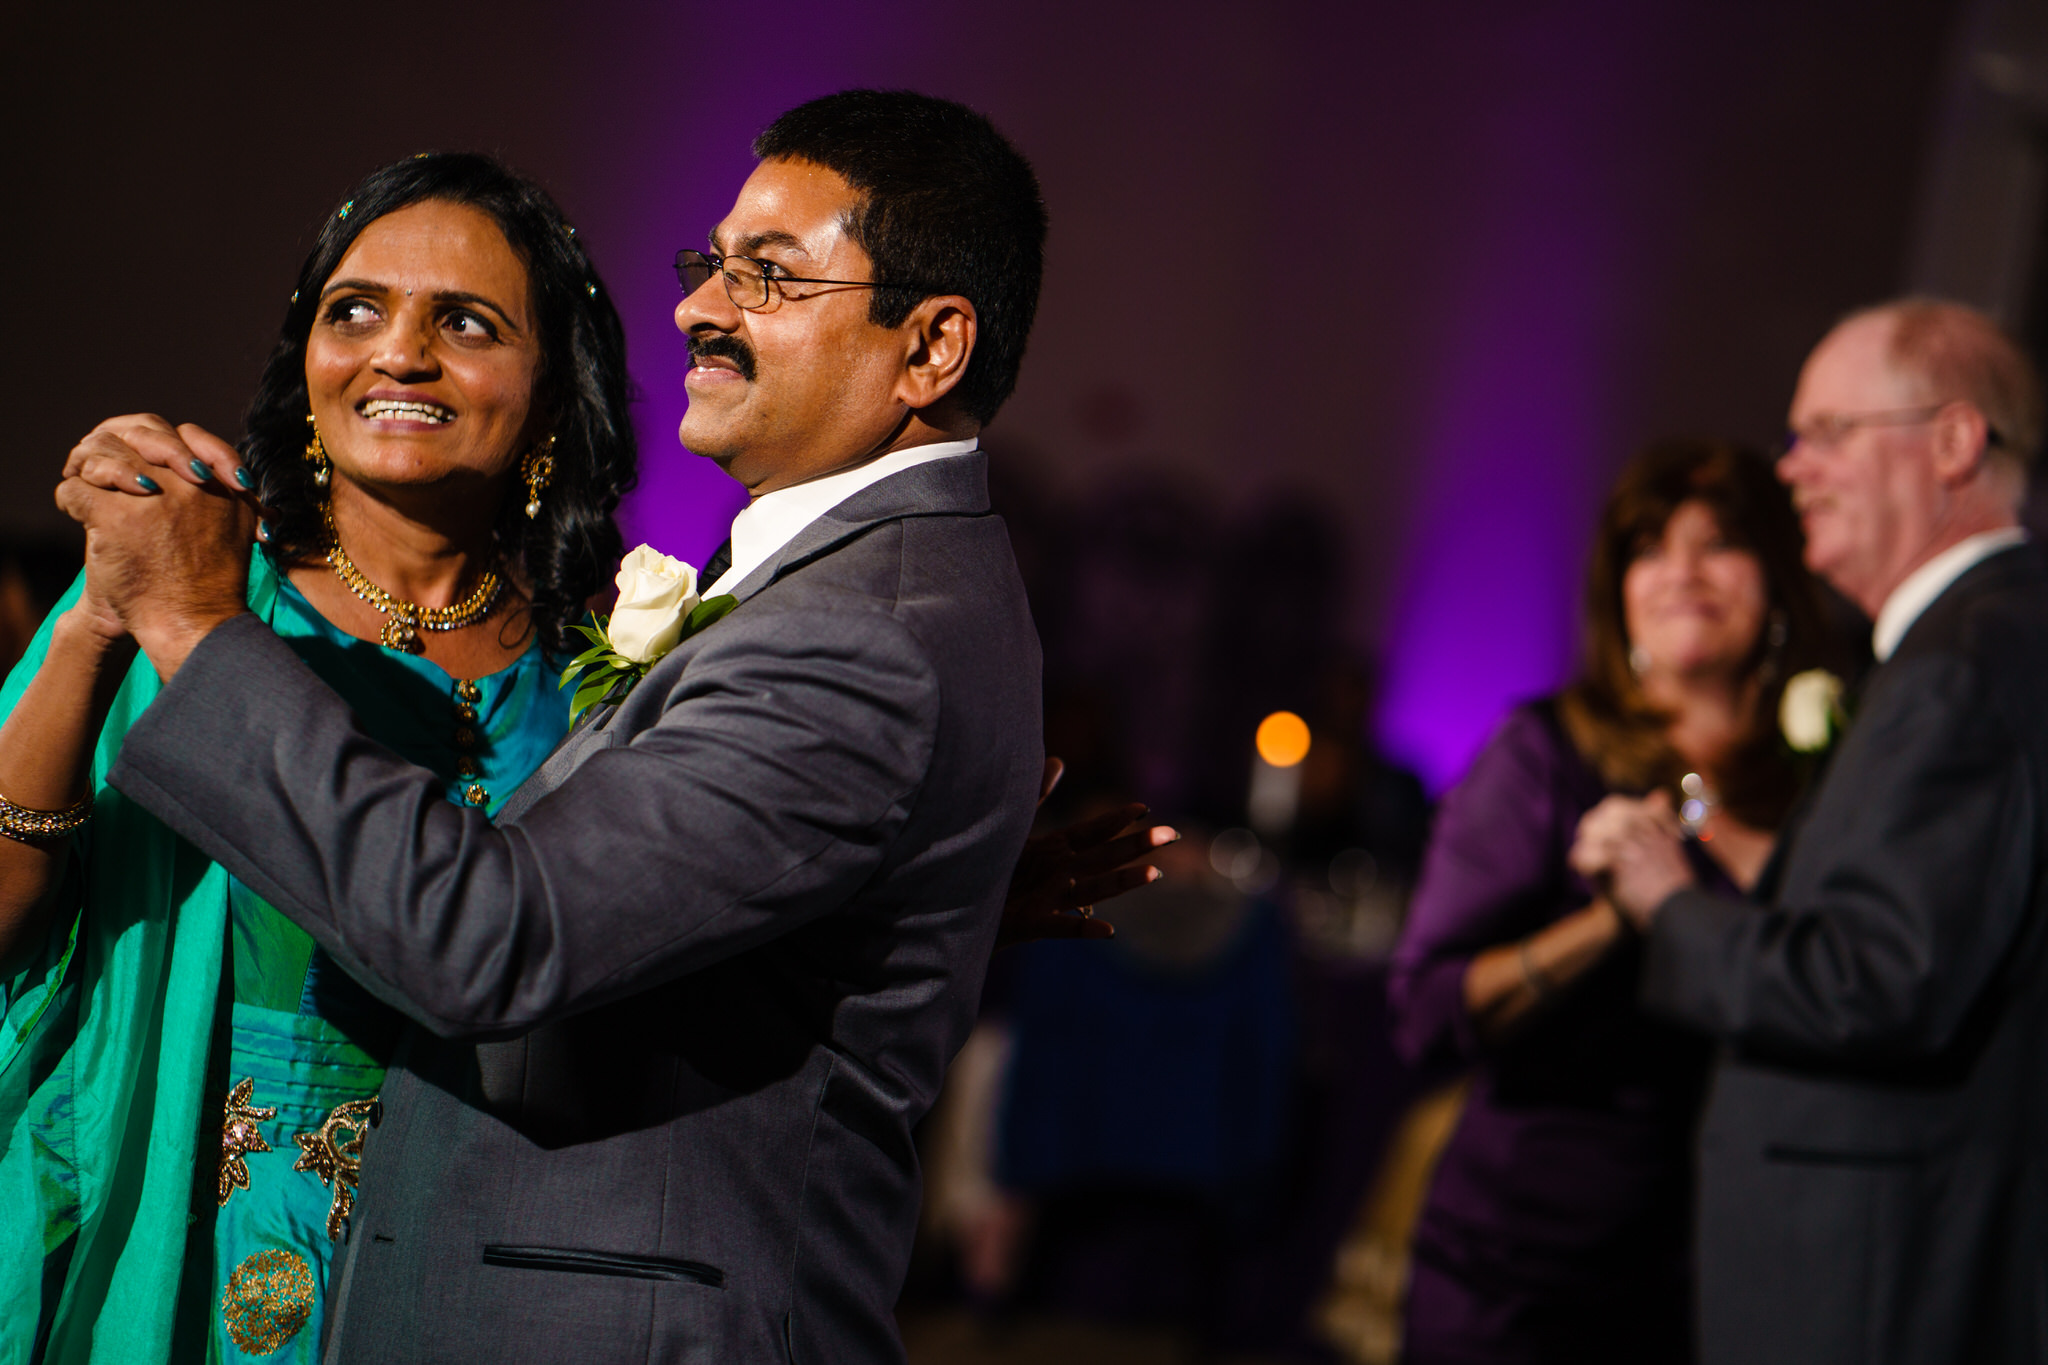 Rachel-Sagar-Garden-on-Millbrook-Wedding-in-Raleigh-NC-046.jpg